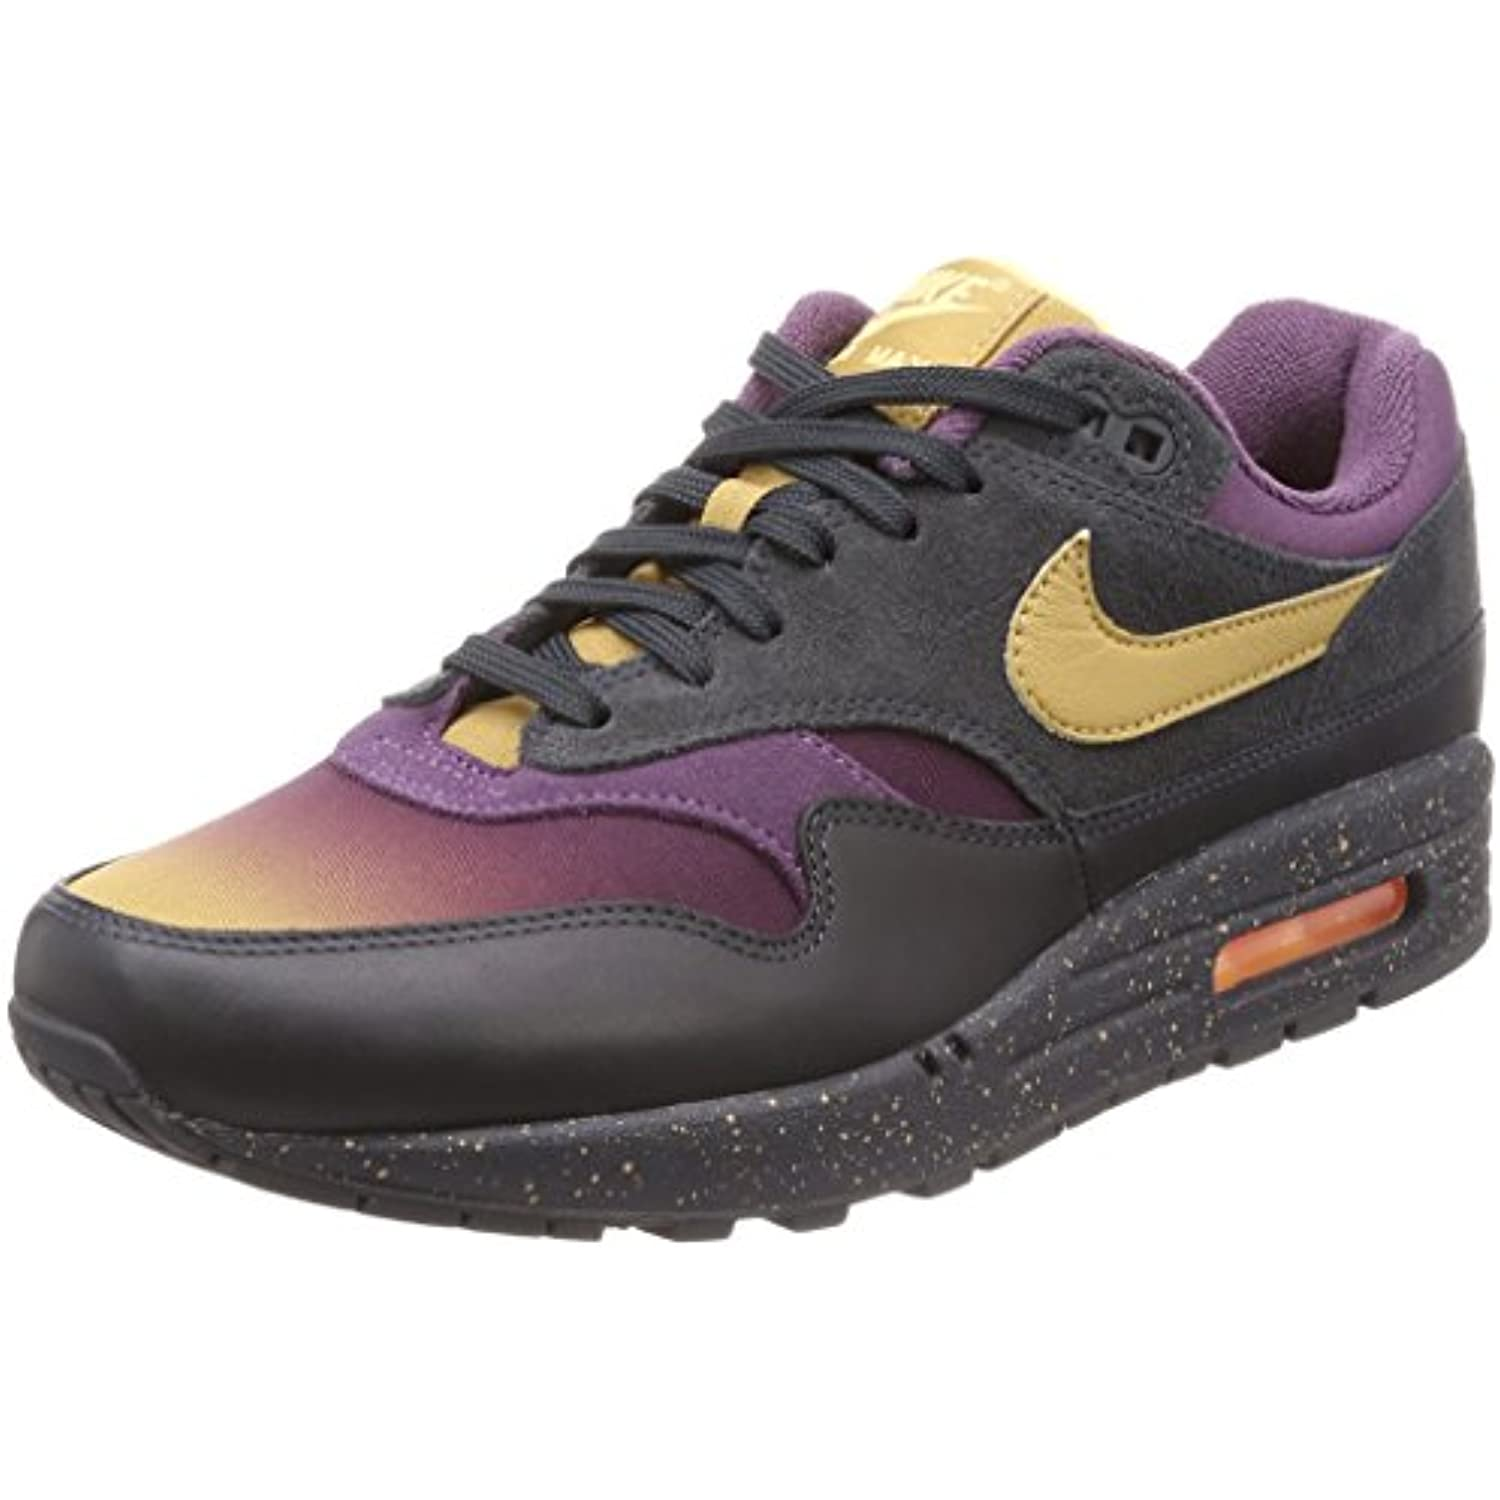 NIKE Air Max 1 Premium, Chaussures Chaussures Chaussures de